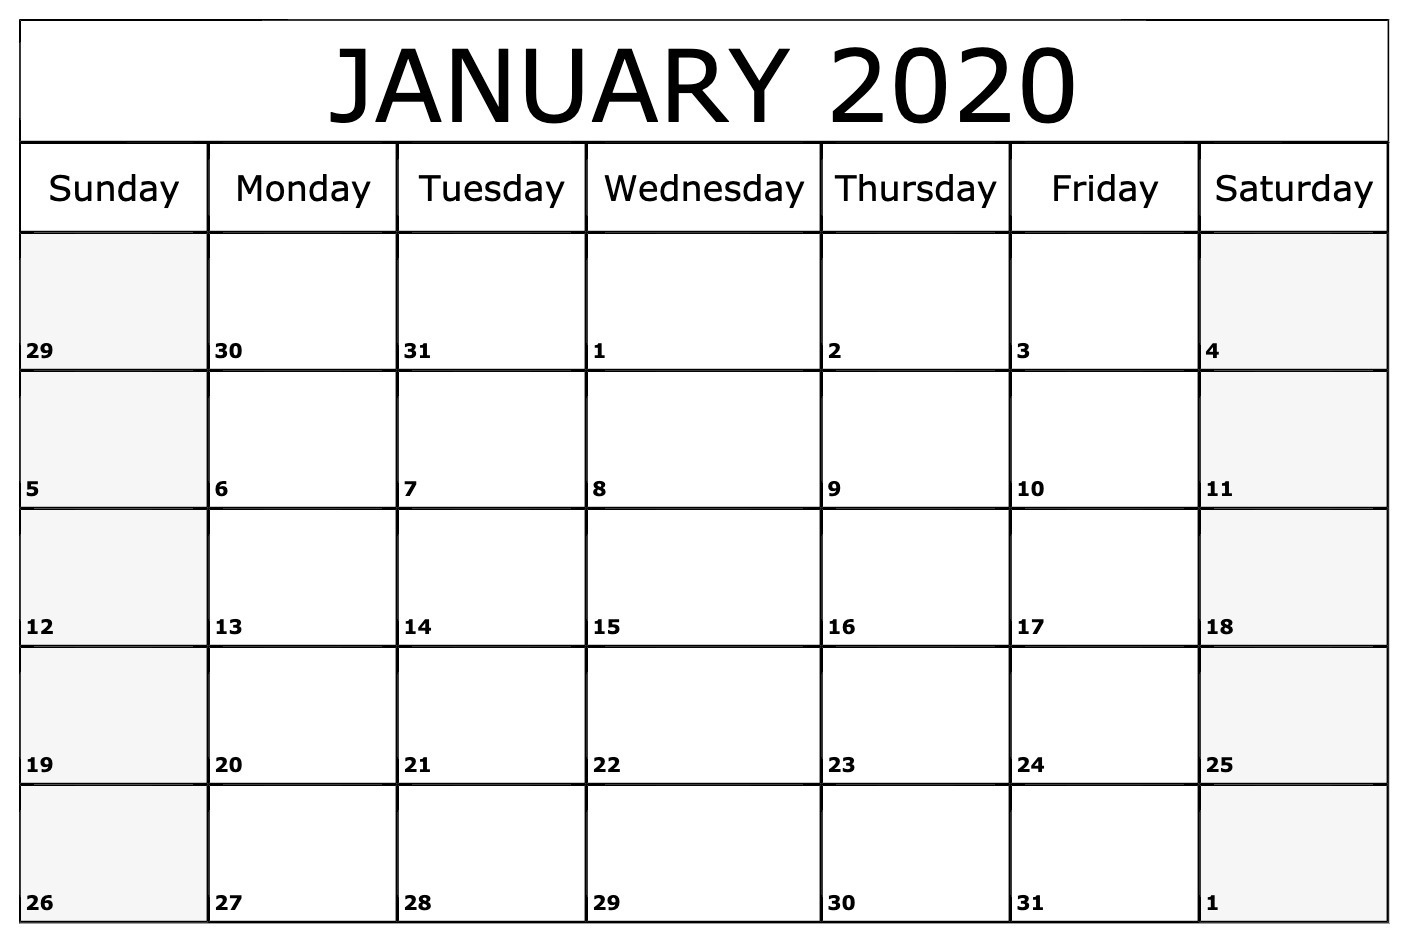 January 2020 Calendar Printable Template In Pdf Word Excel Perky 2020 Monthly Calendar Template Word